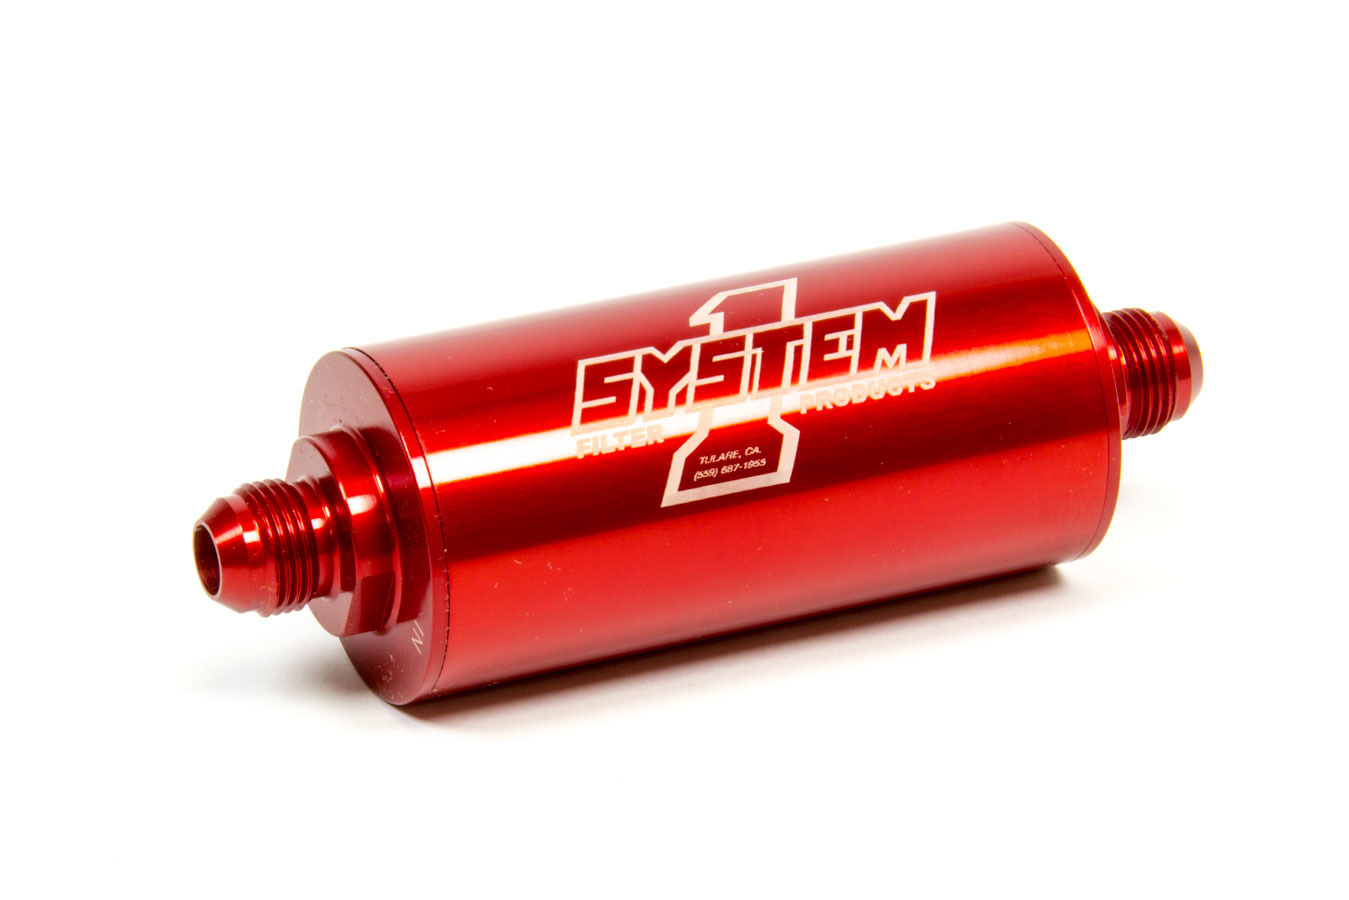 System One 201-203408 Fuel Filter, Medium Billet, In-Line, 35 Micron, Stainless Element, 8 AN Male Inlet, 8 AN Male Outlet, Aluminum, Red Anodize, Each